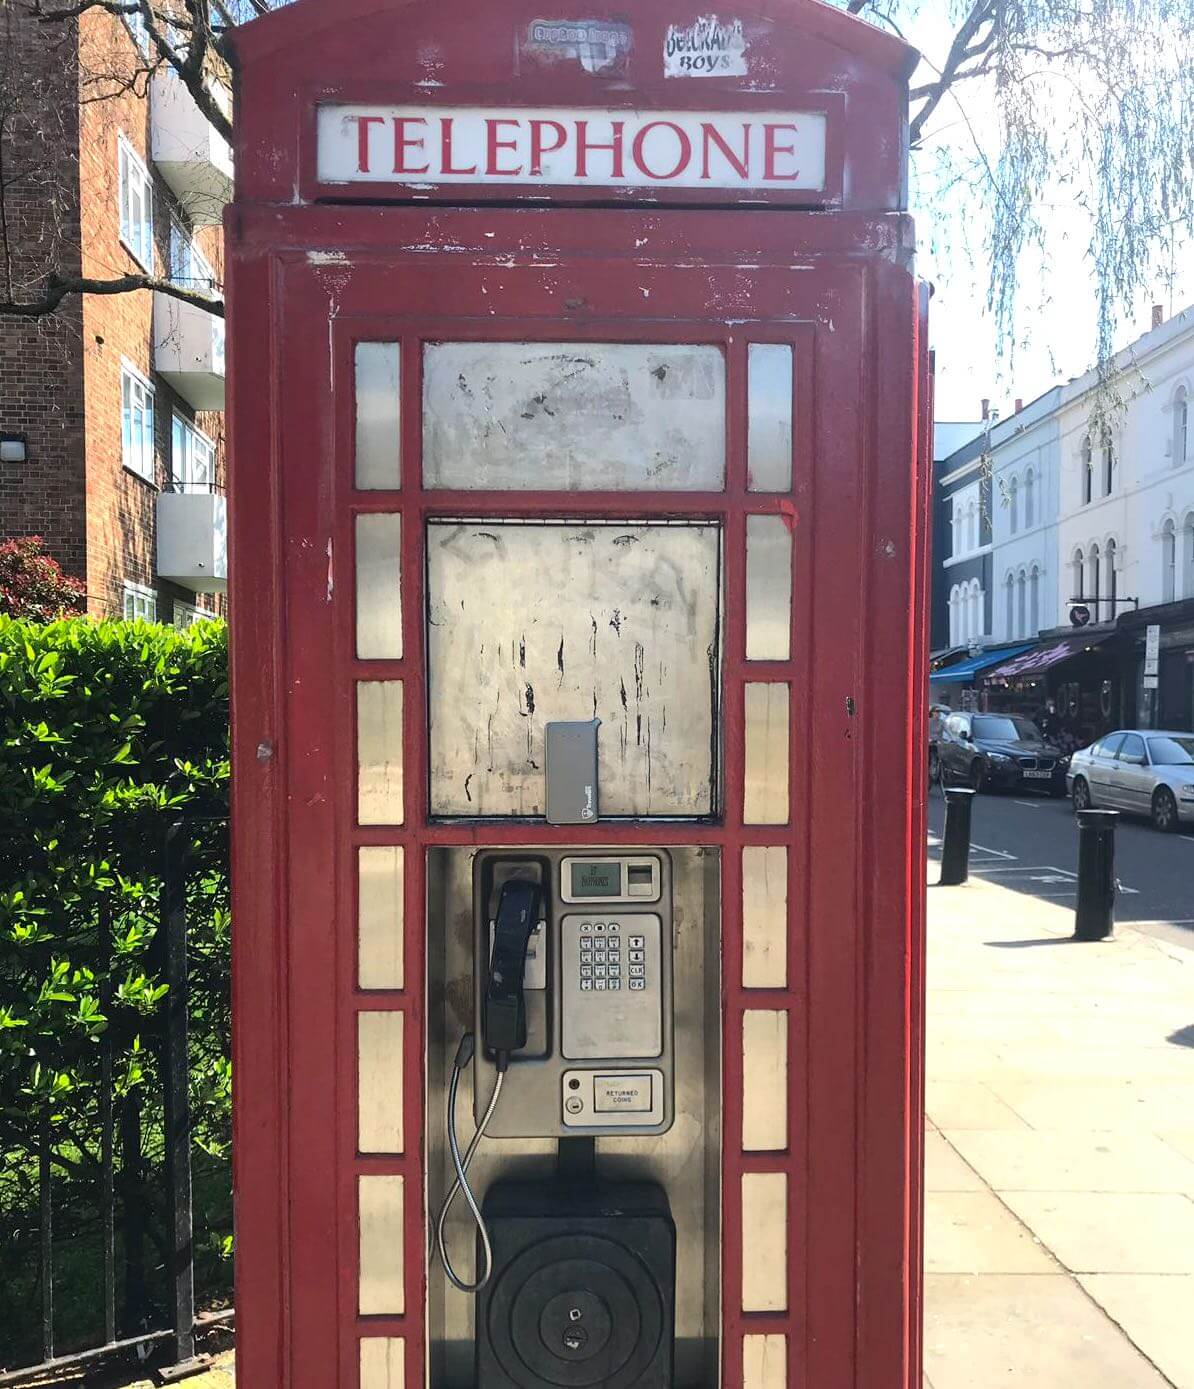 Pocket Wifi router and a London public phone for free wifi in London